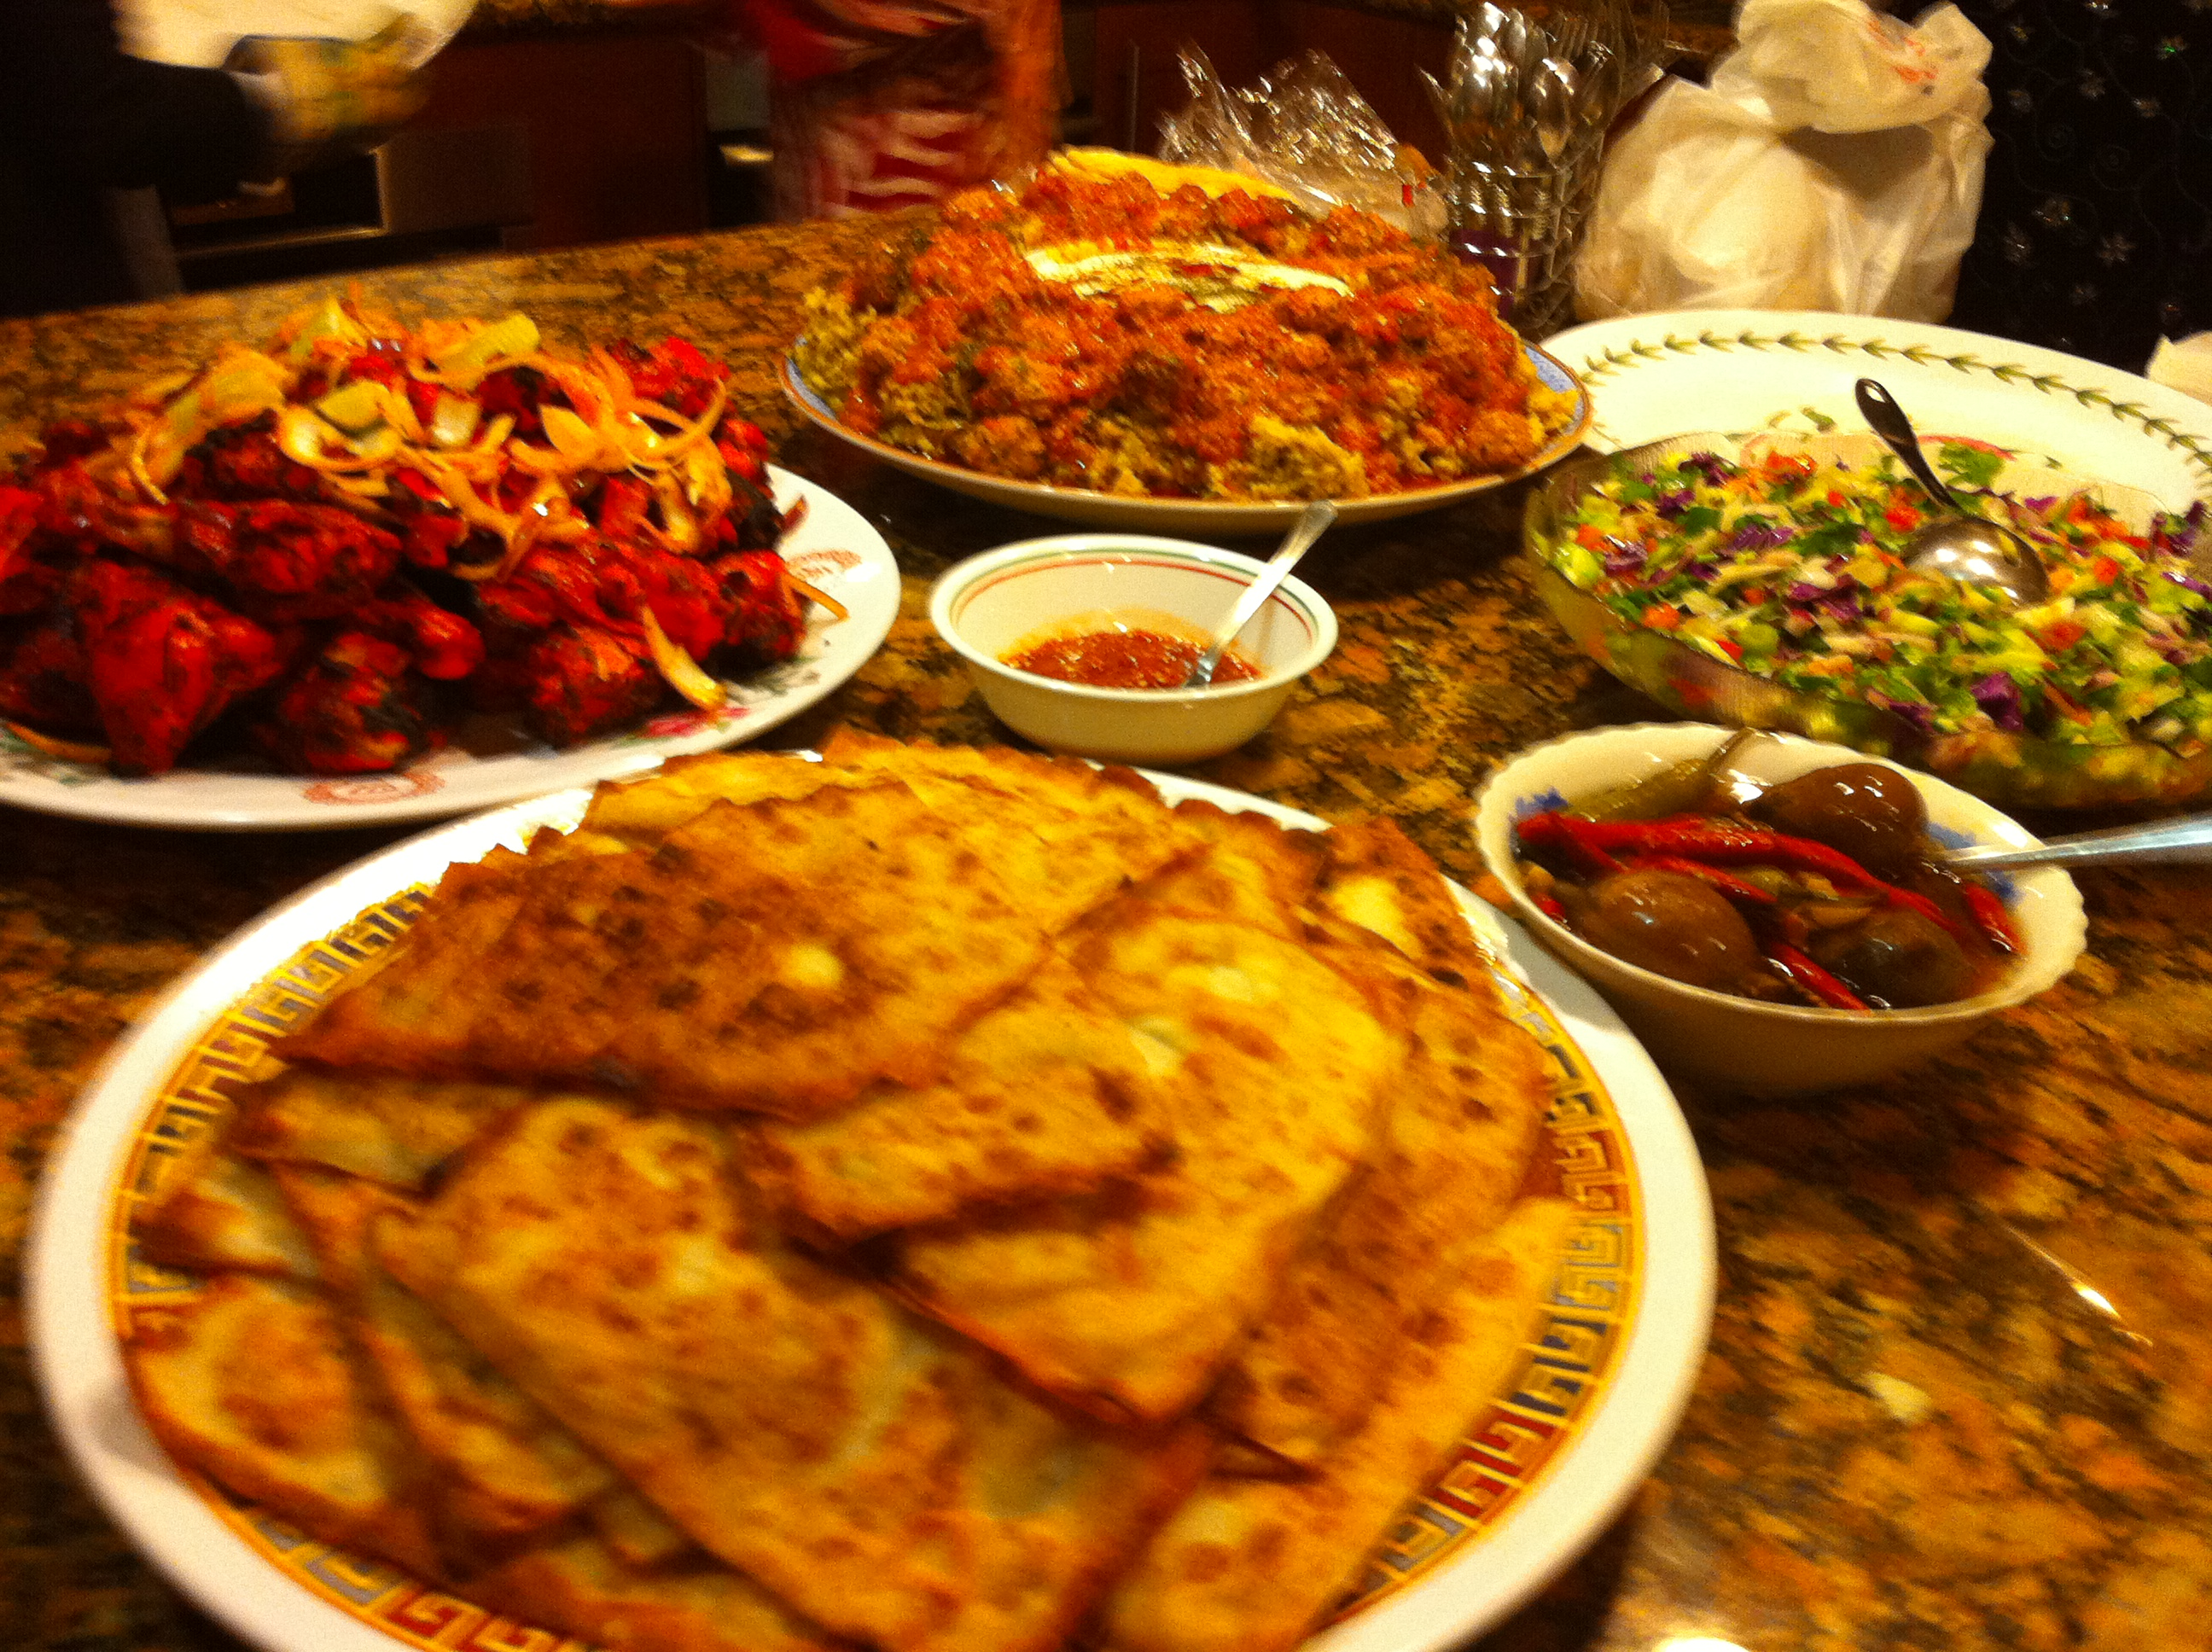 Afghan food by By ANBI (Own work) [CC-BY-SA-3.0 (https://creativecommons.org/licenses/by-sa/3.0)], via Wikimedia Commons